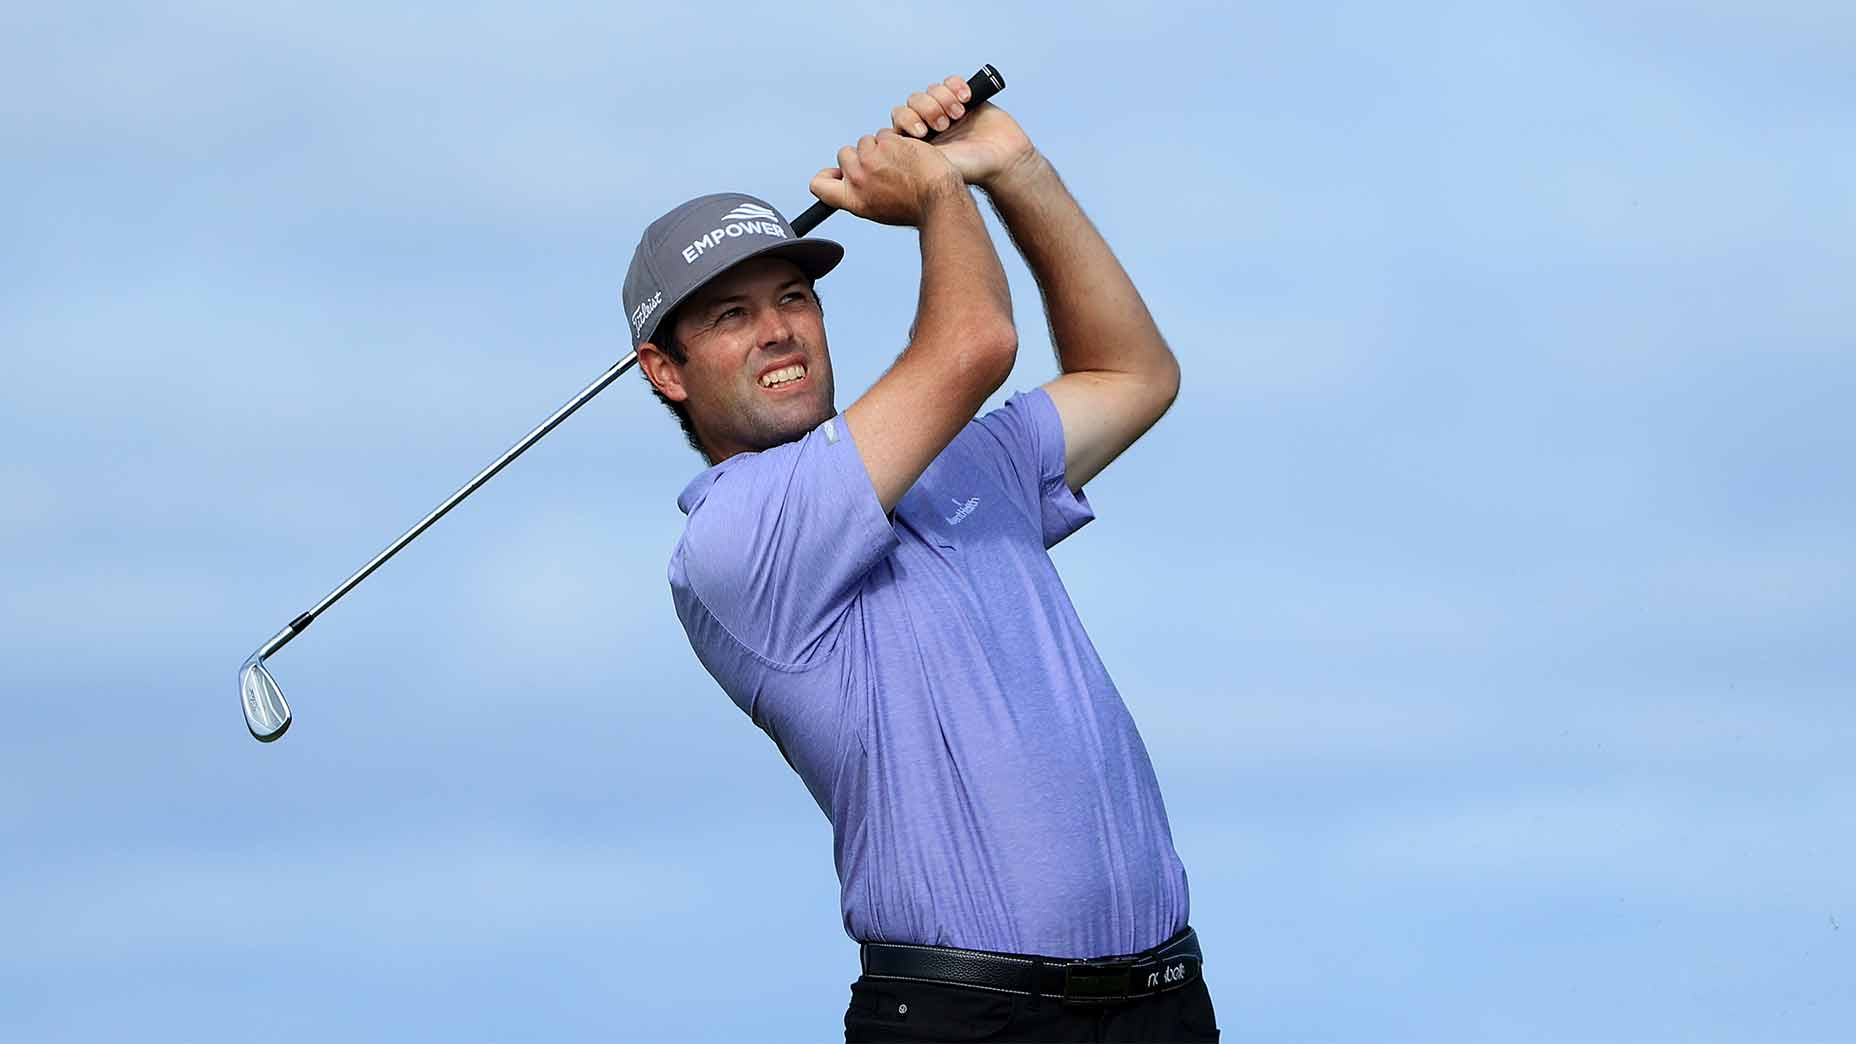 Robert Streb hits a shot in the final round.